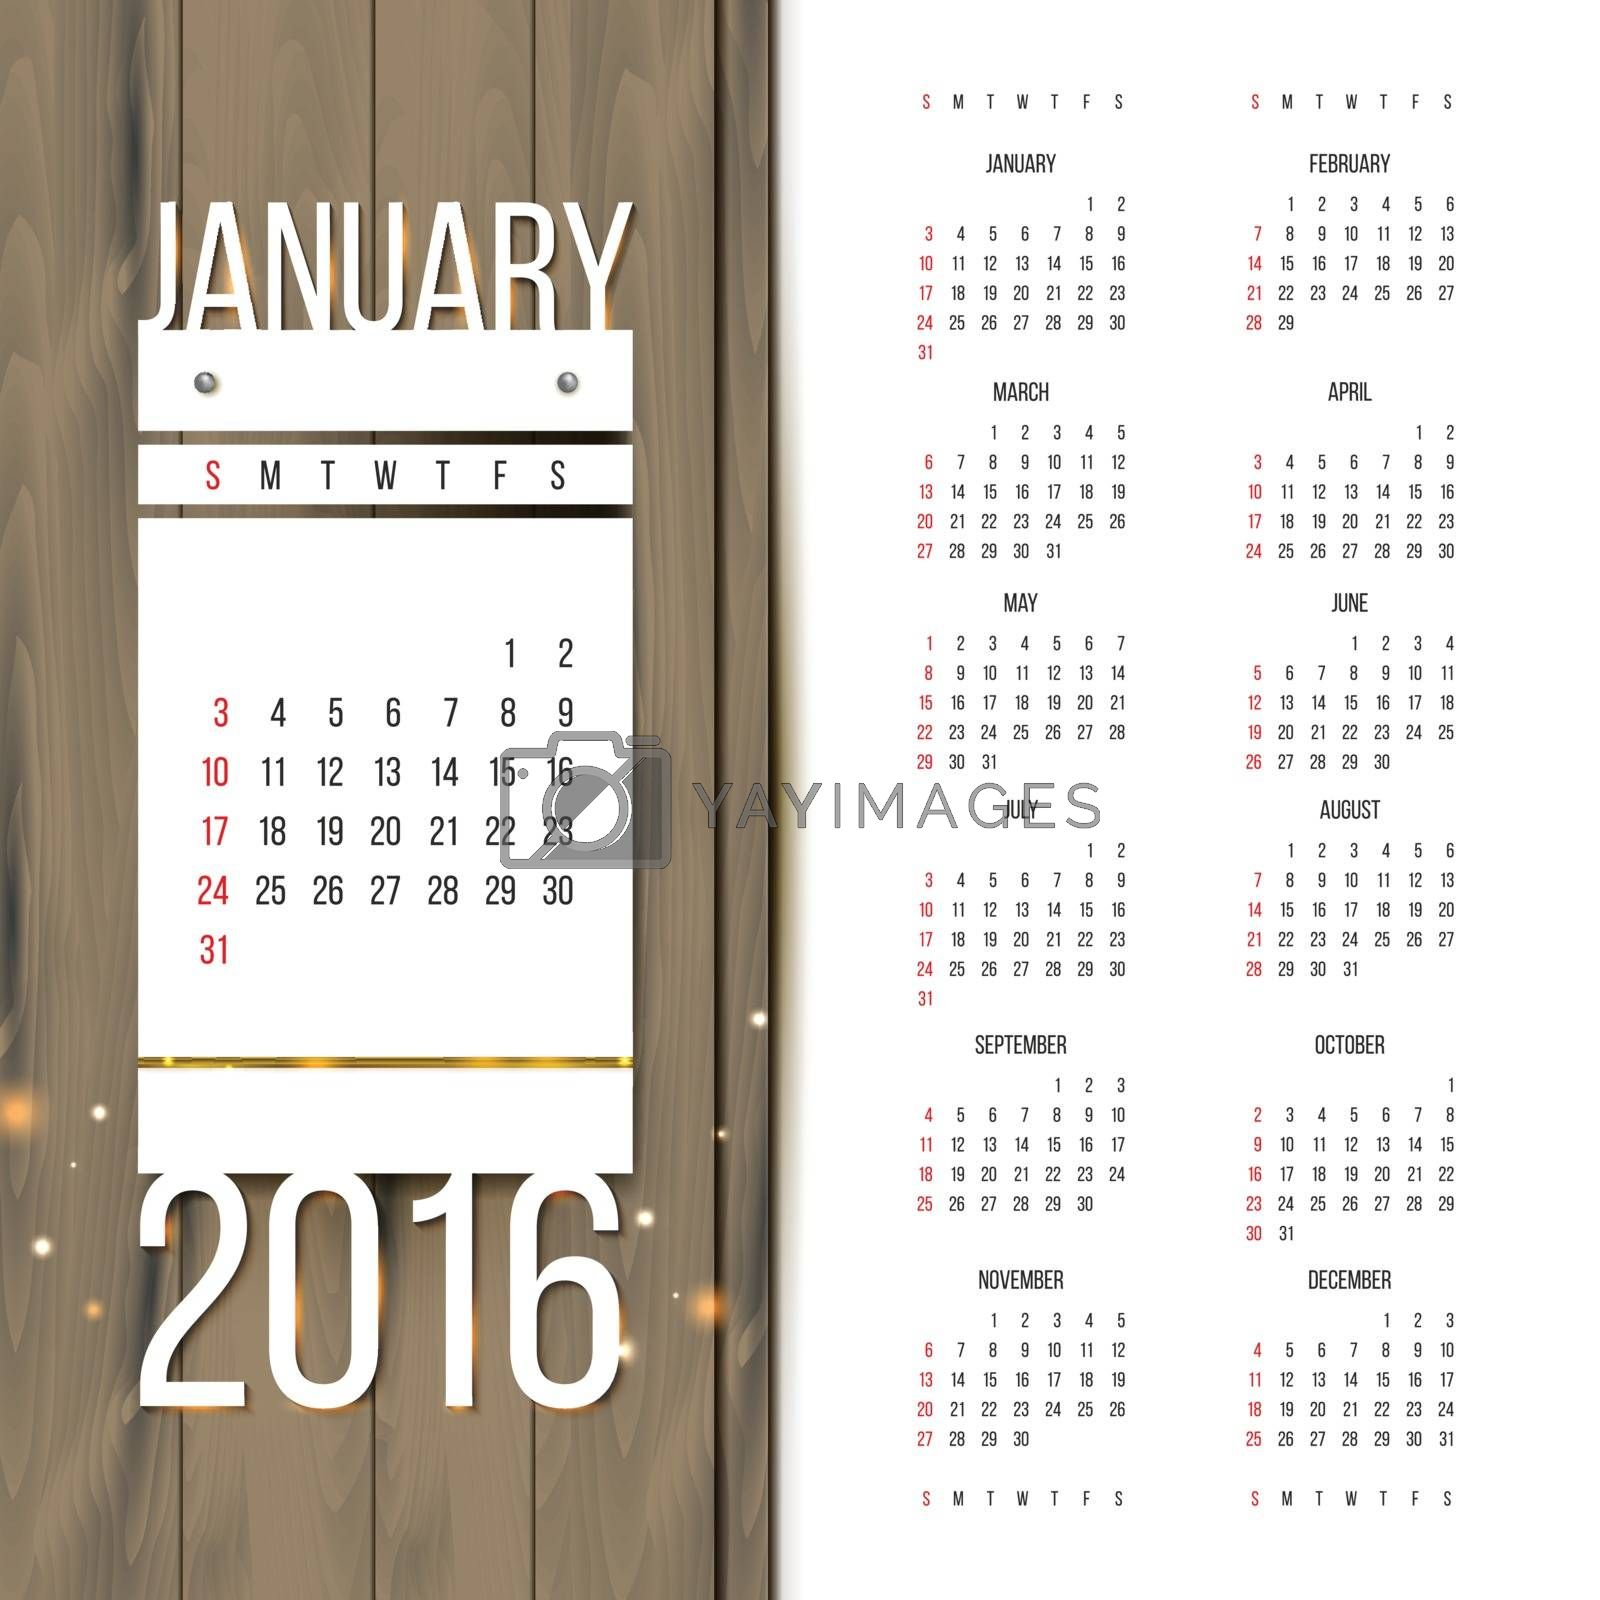 Calendar 2016 with January preview. Week starts on Sunday.